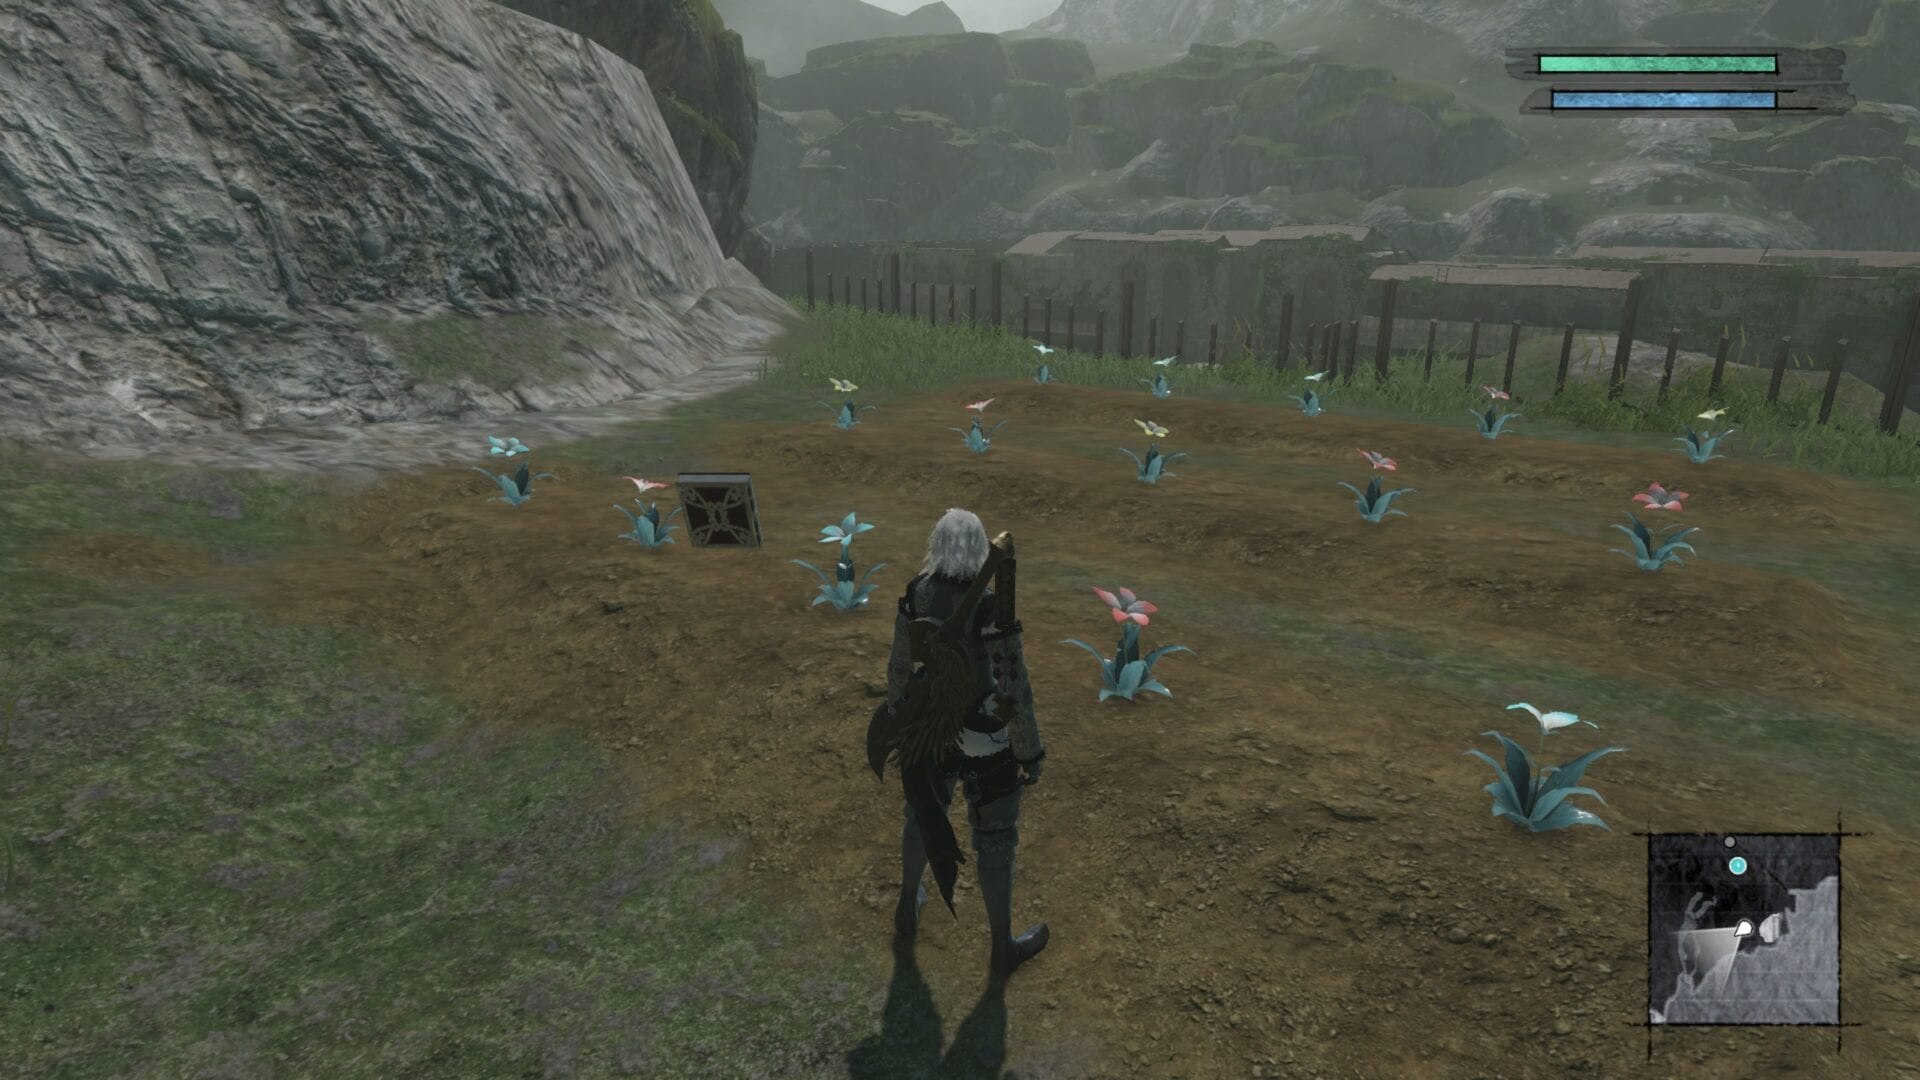 NieR Replicant: How to Grow Flowers and Get the Legendary Flower